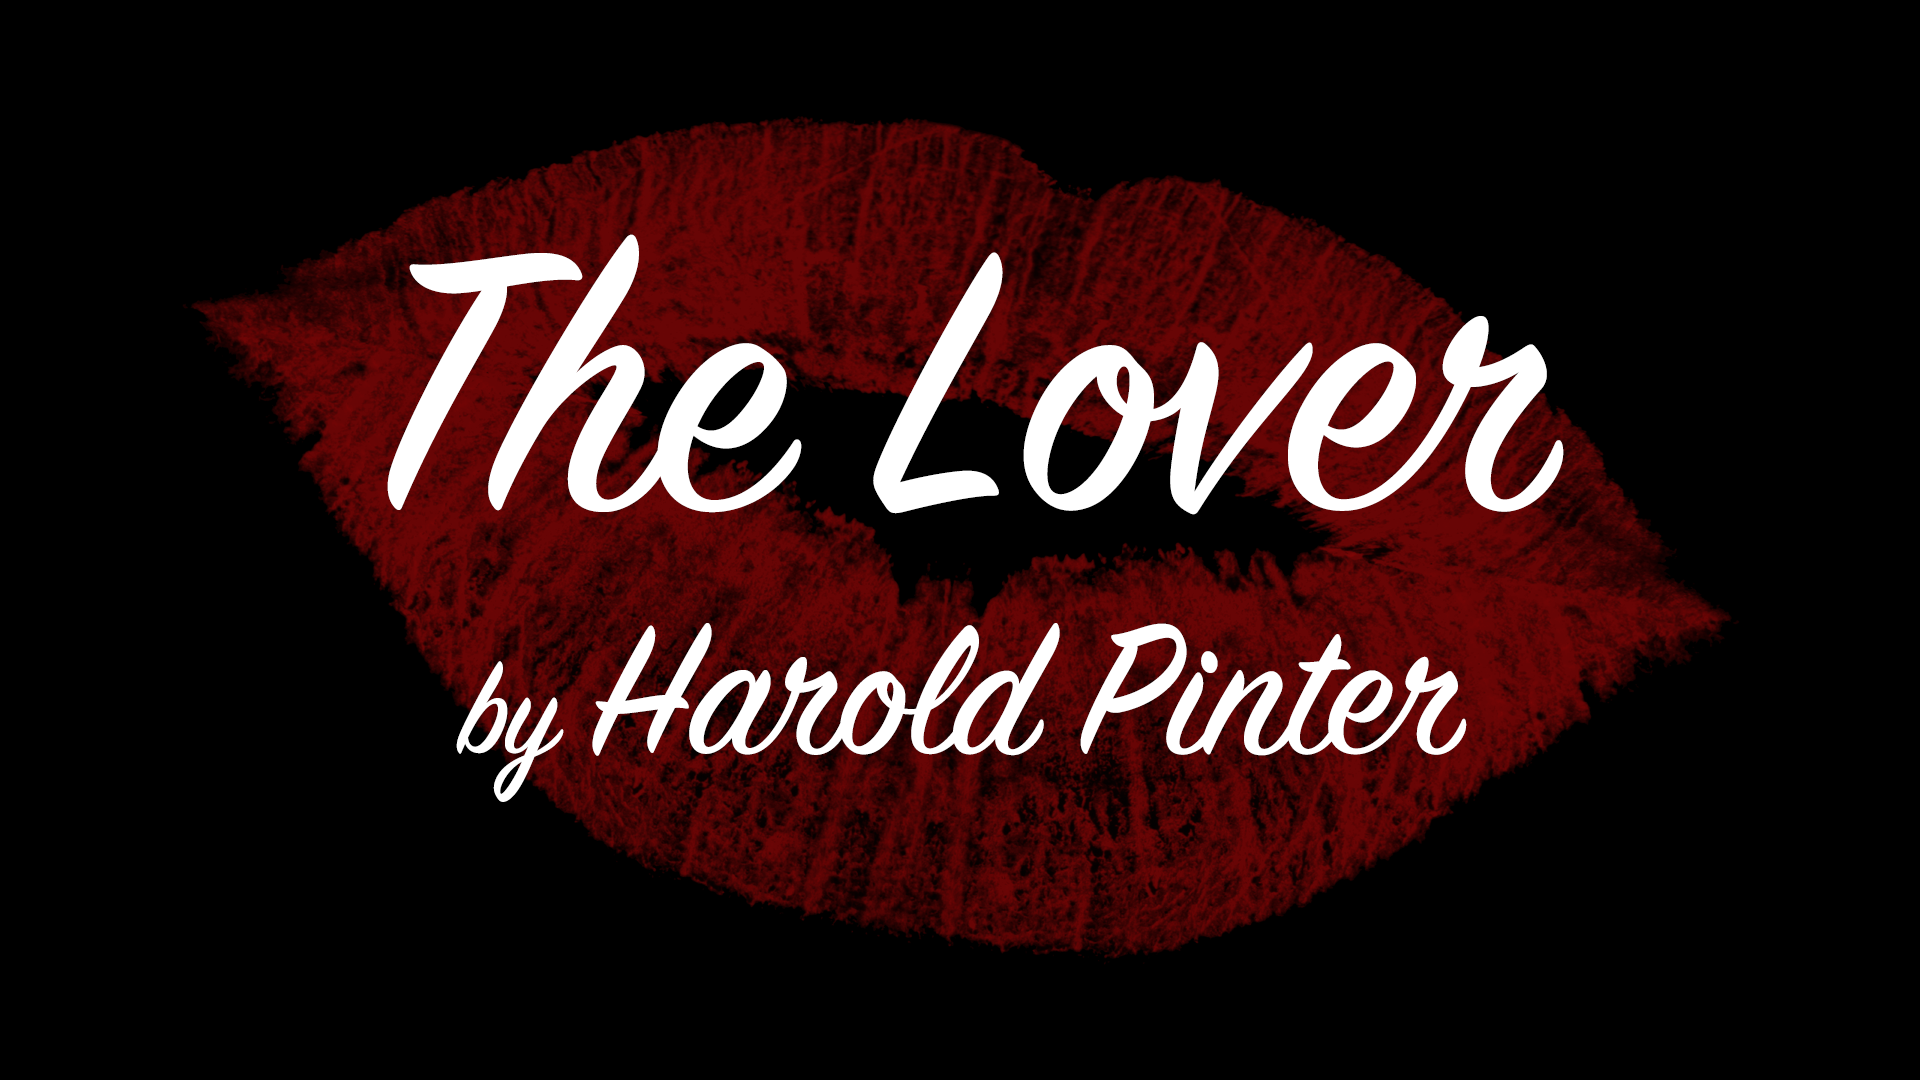 The Lover Press Release – December 27, 2016